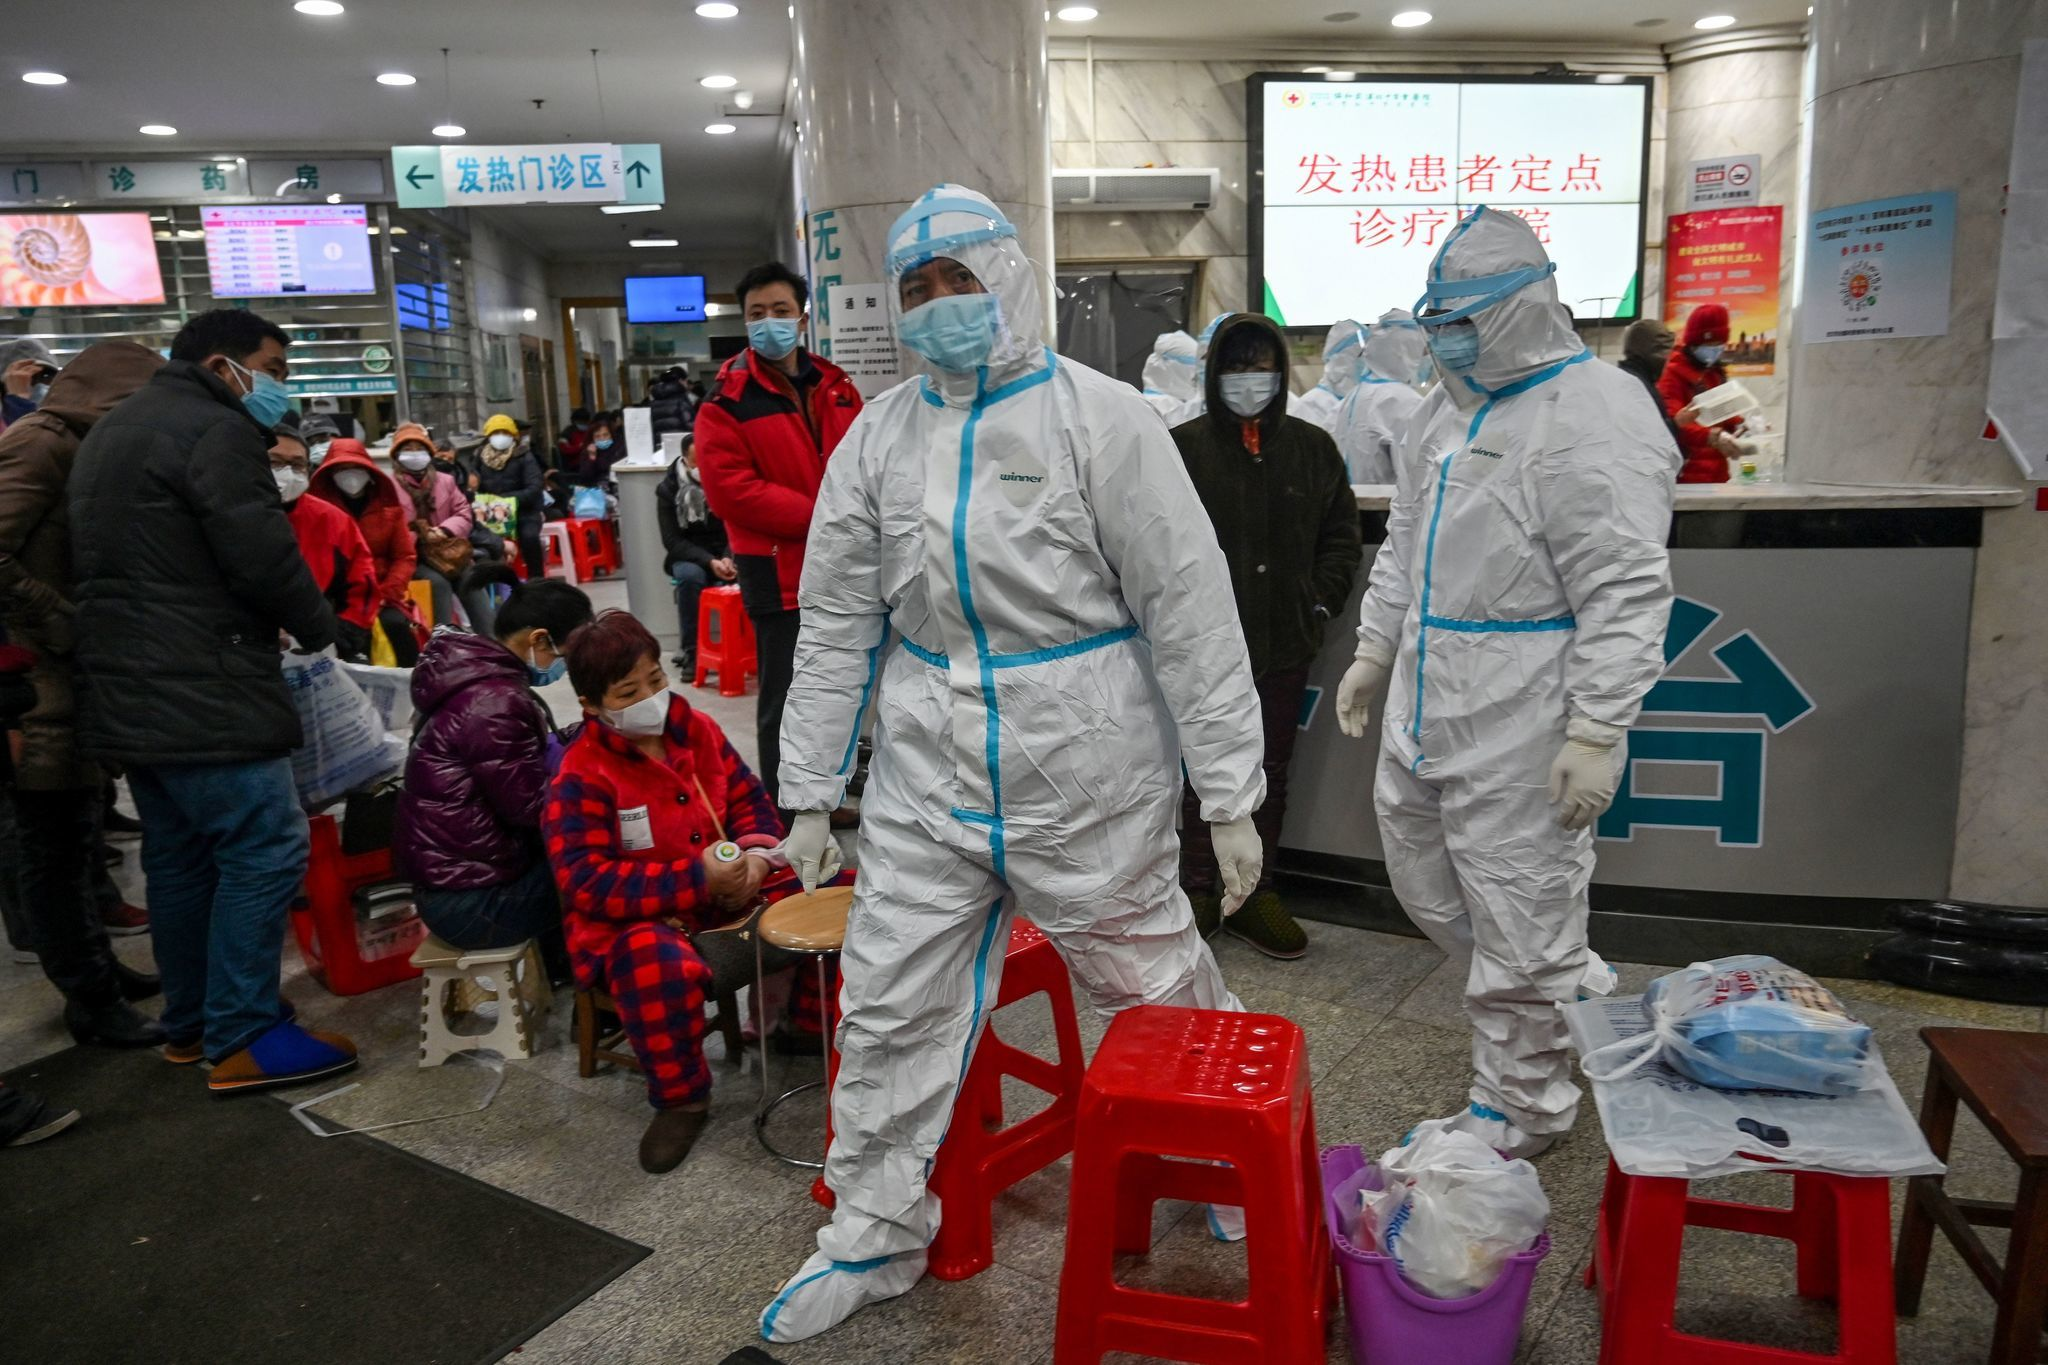 Coronavirus prompts private car ban in Wuhan, school closures as illness continues to spread